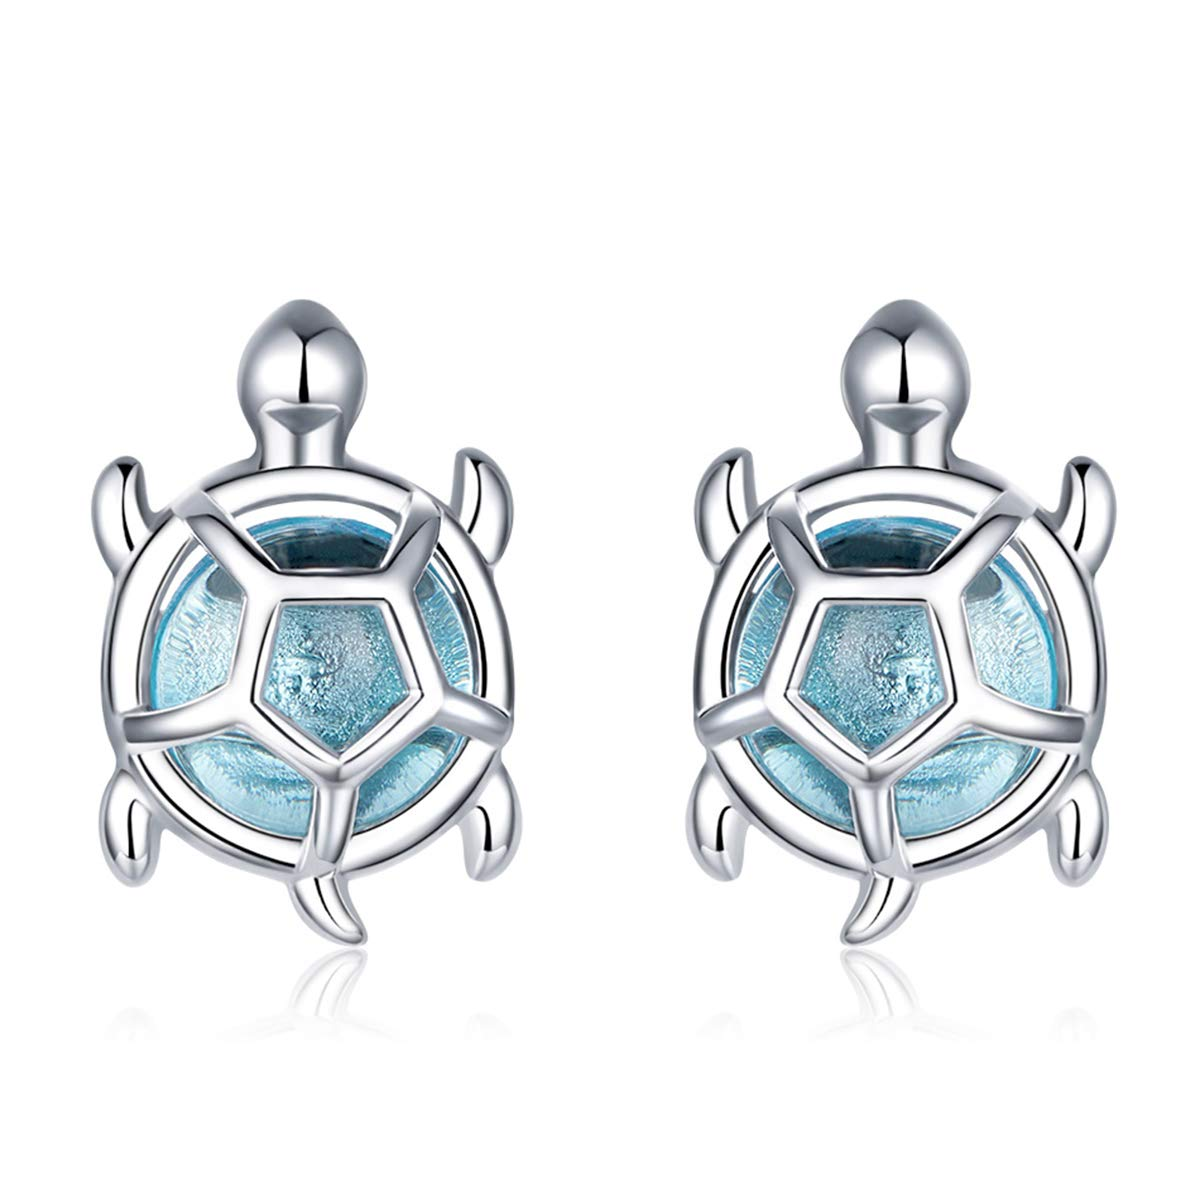 VOROCO Ocean-Series Sea Turtle Starfish Pearl Shel Anchor White Gold Plated 925 Sterling Silver Cubic Zirconia Stud Earrings Gifts for Women Girls